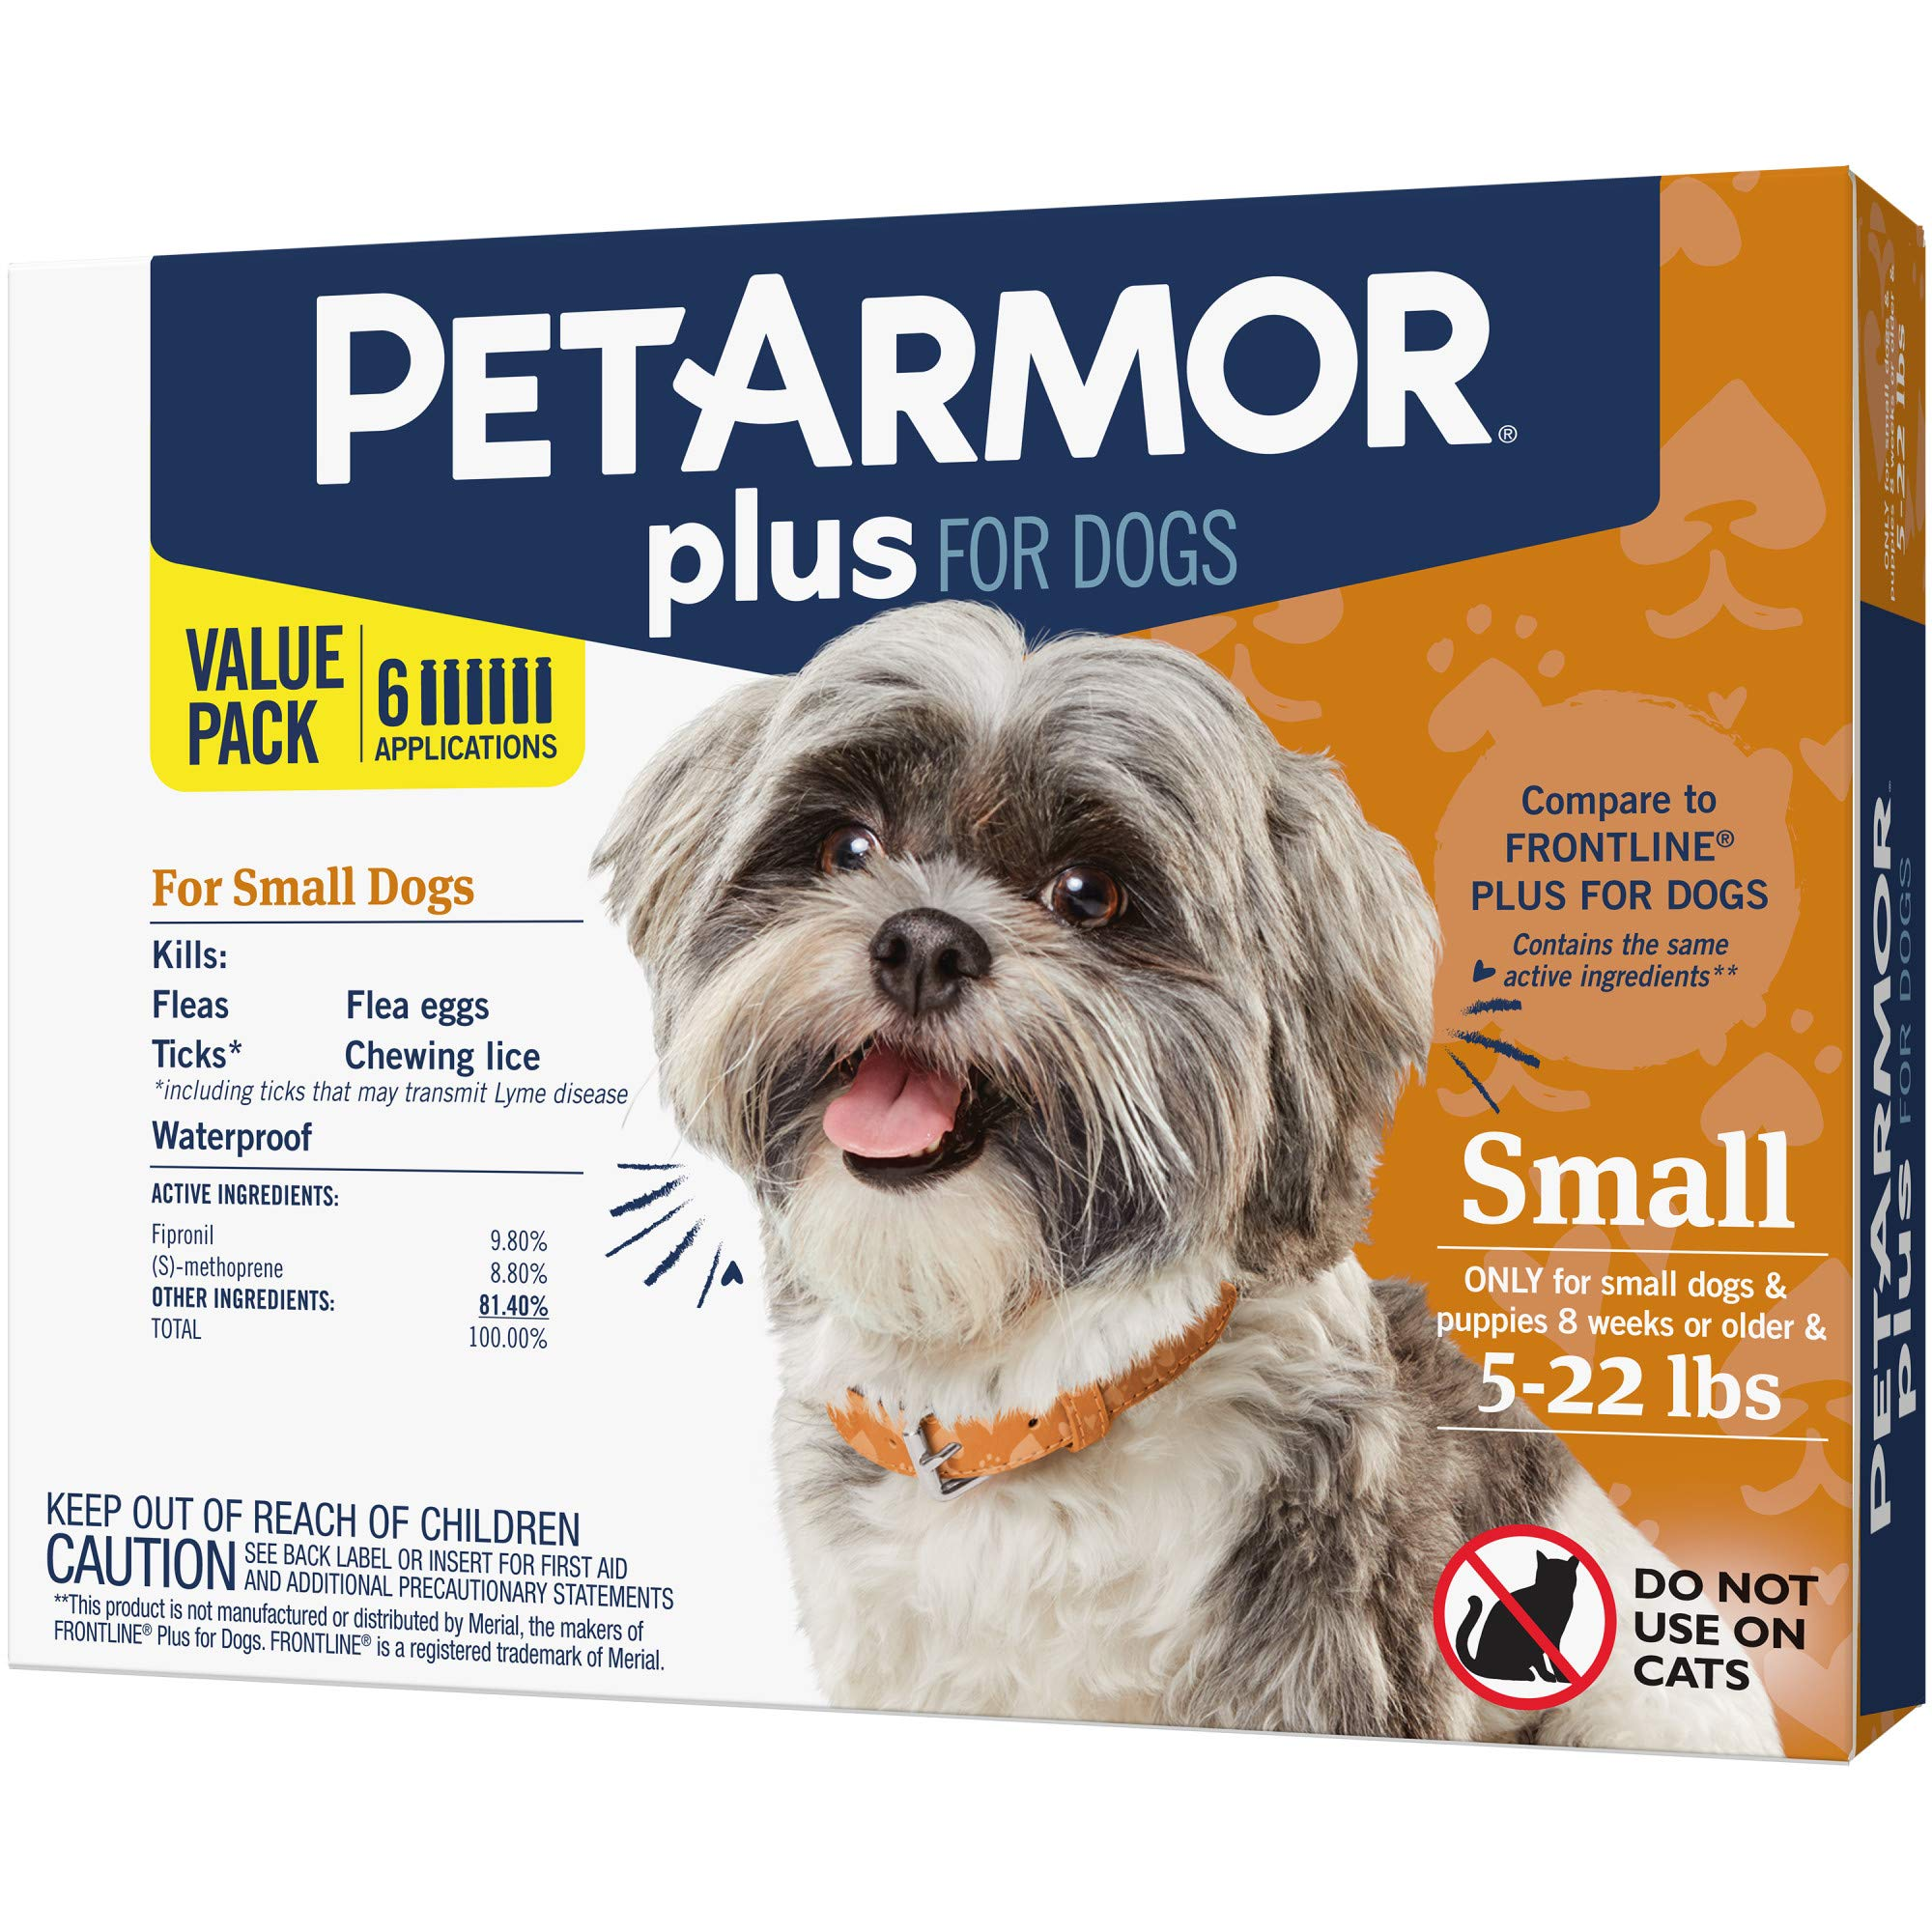 PETARMOR Plus for Dogs, Flea & Tick Prevention for small Dogs Includes 6 Month Supply of Topical Flea Treatments by PETARMOR